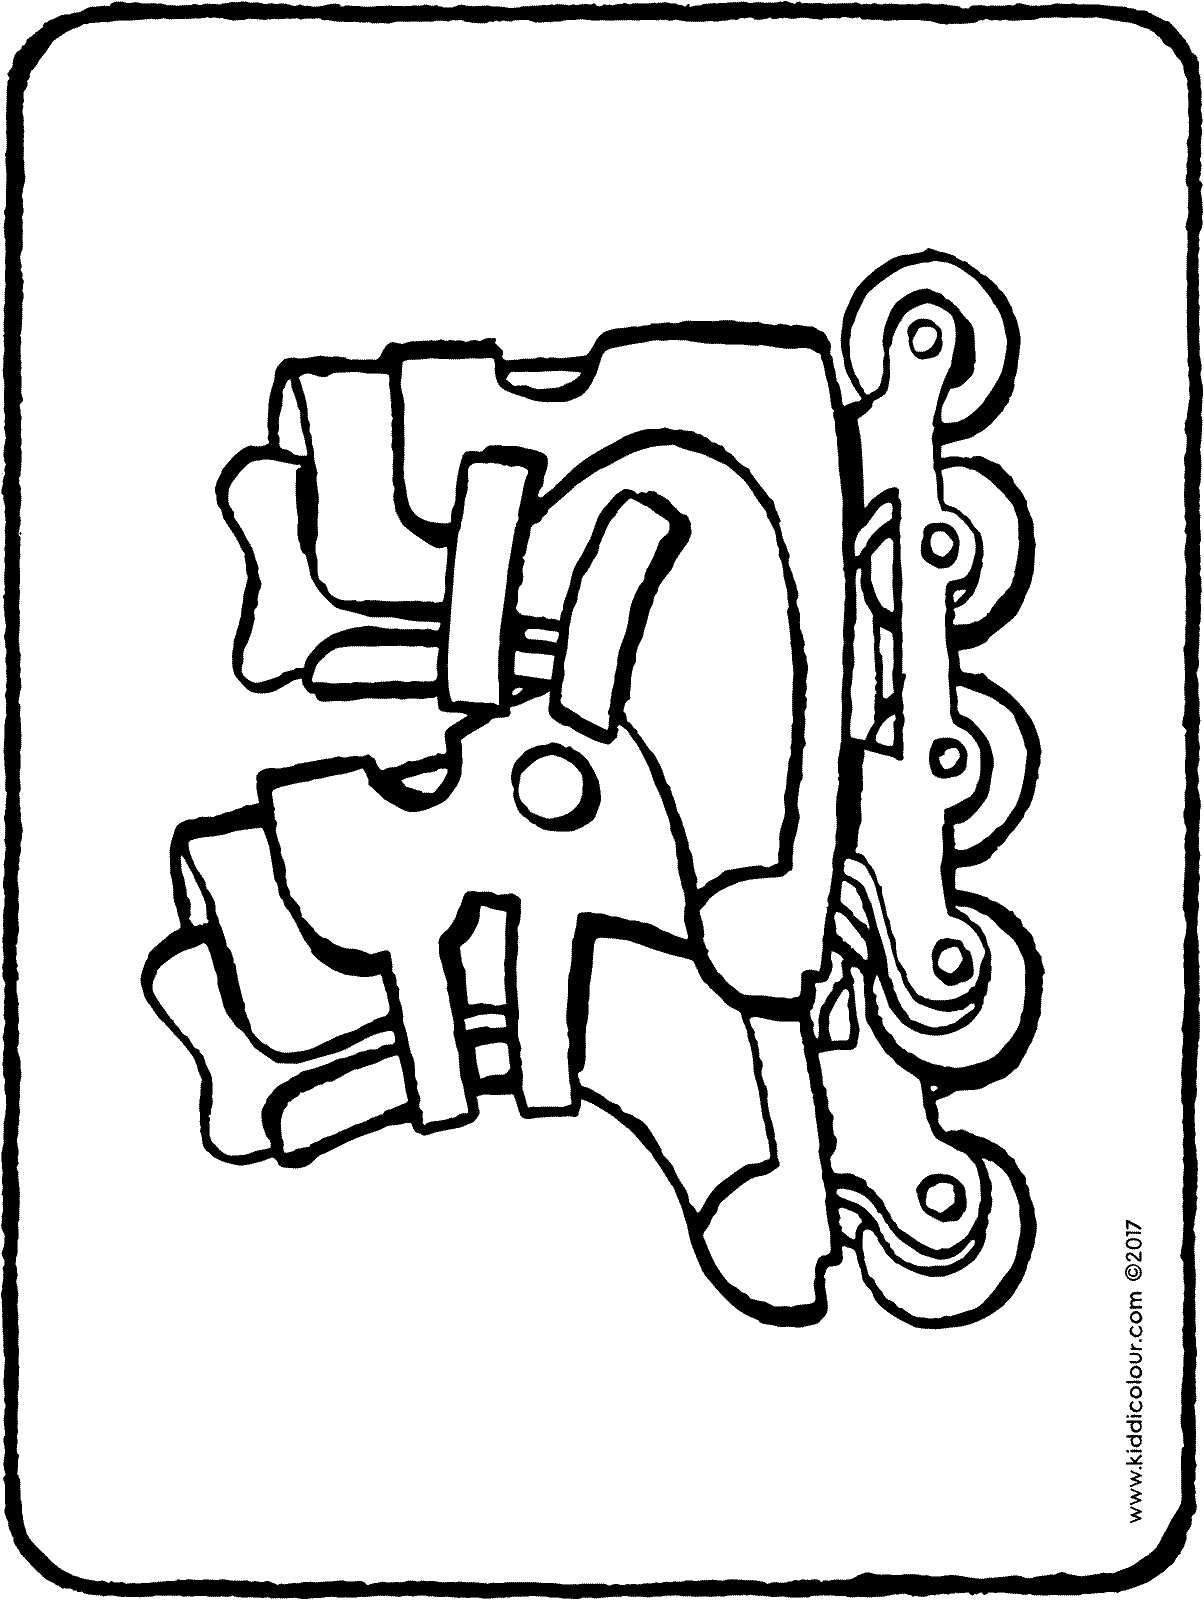 rollerblades colouring page page drawing picture 01H